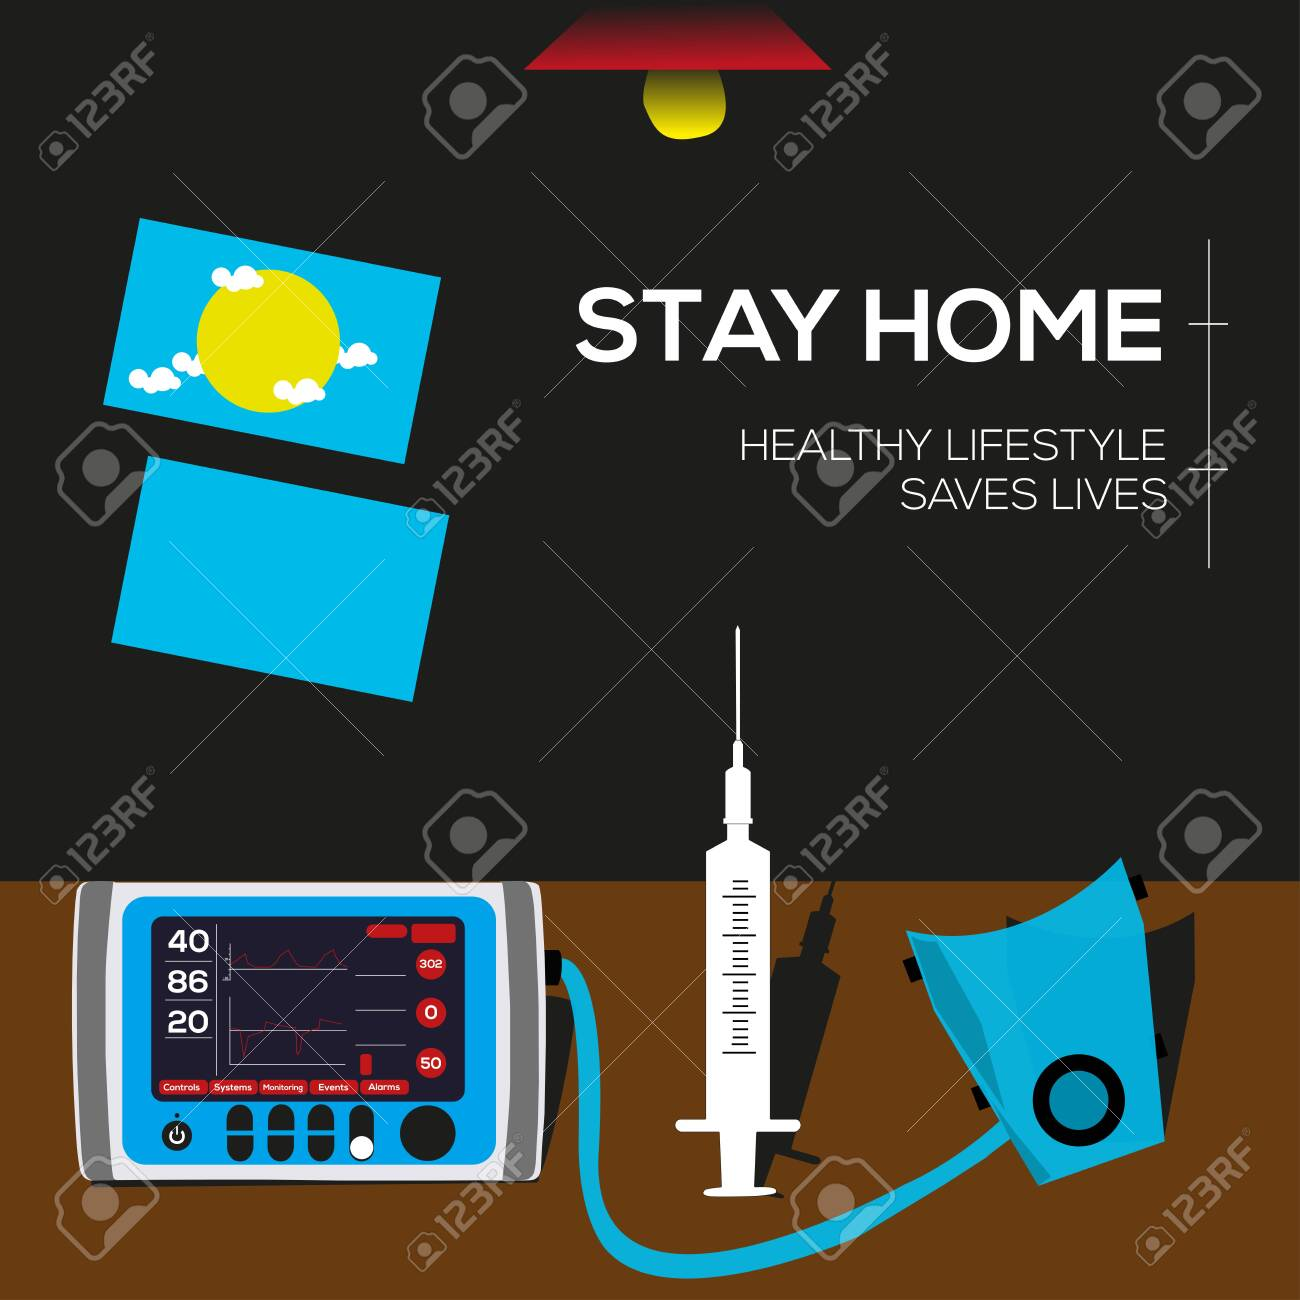 Stay home, protect your life. Vector illustration with needle, air mask, table, fan, window elements. - 149451006